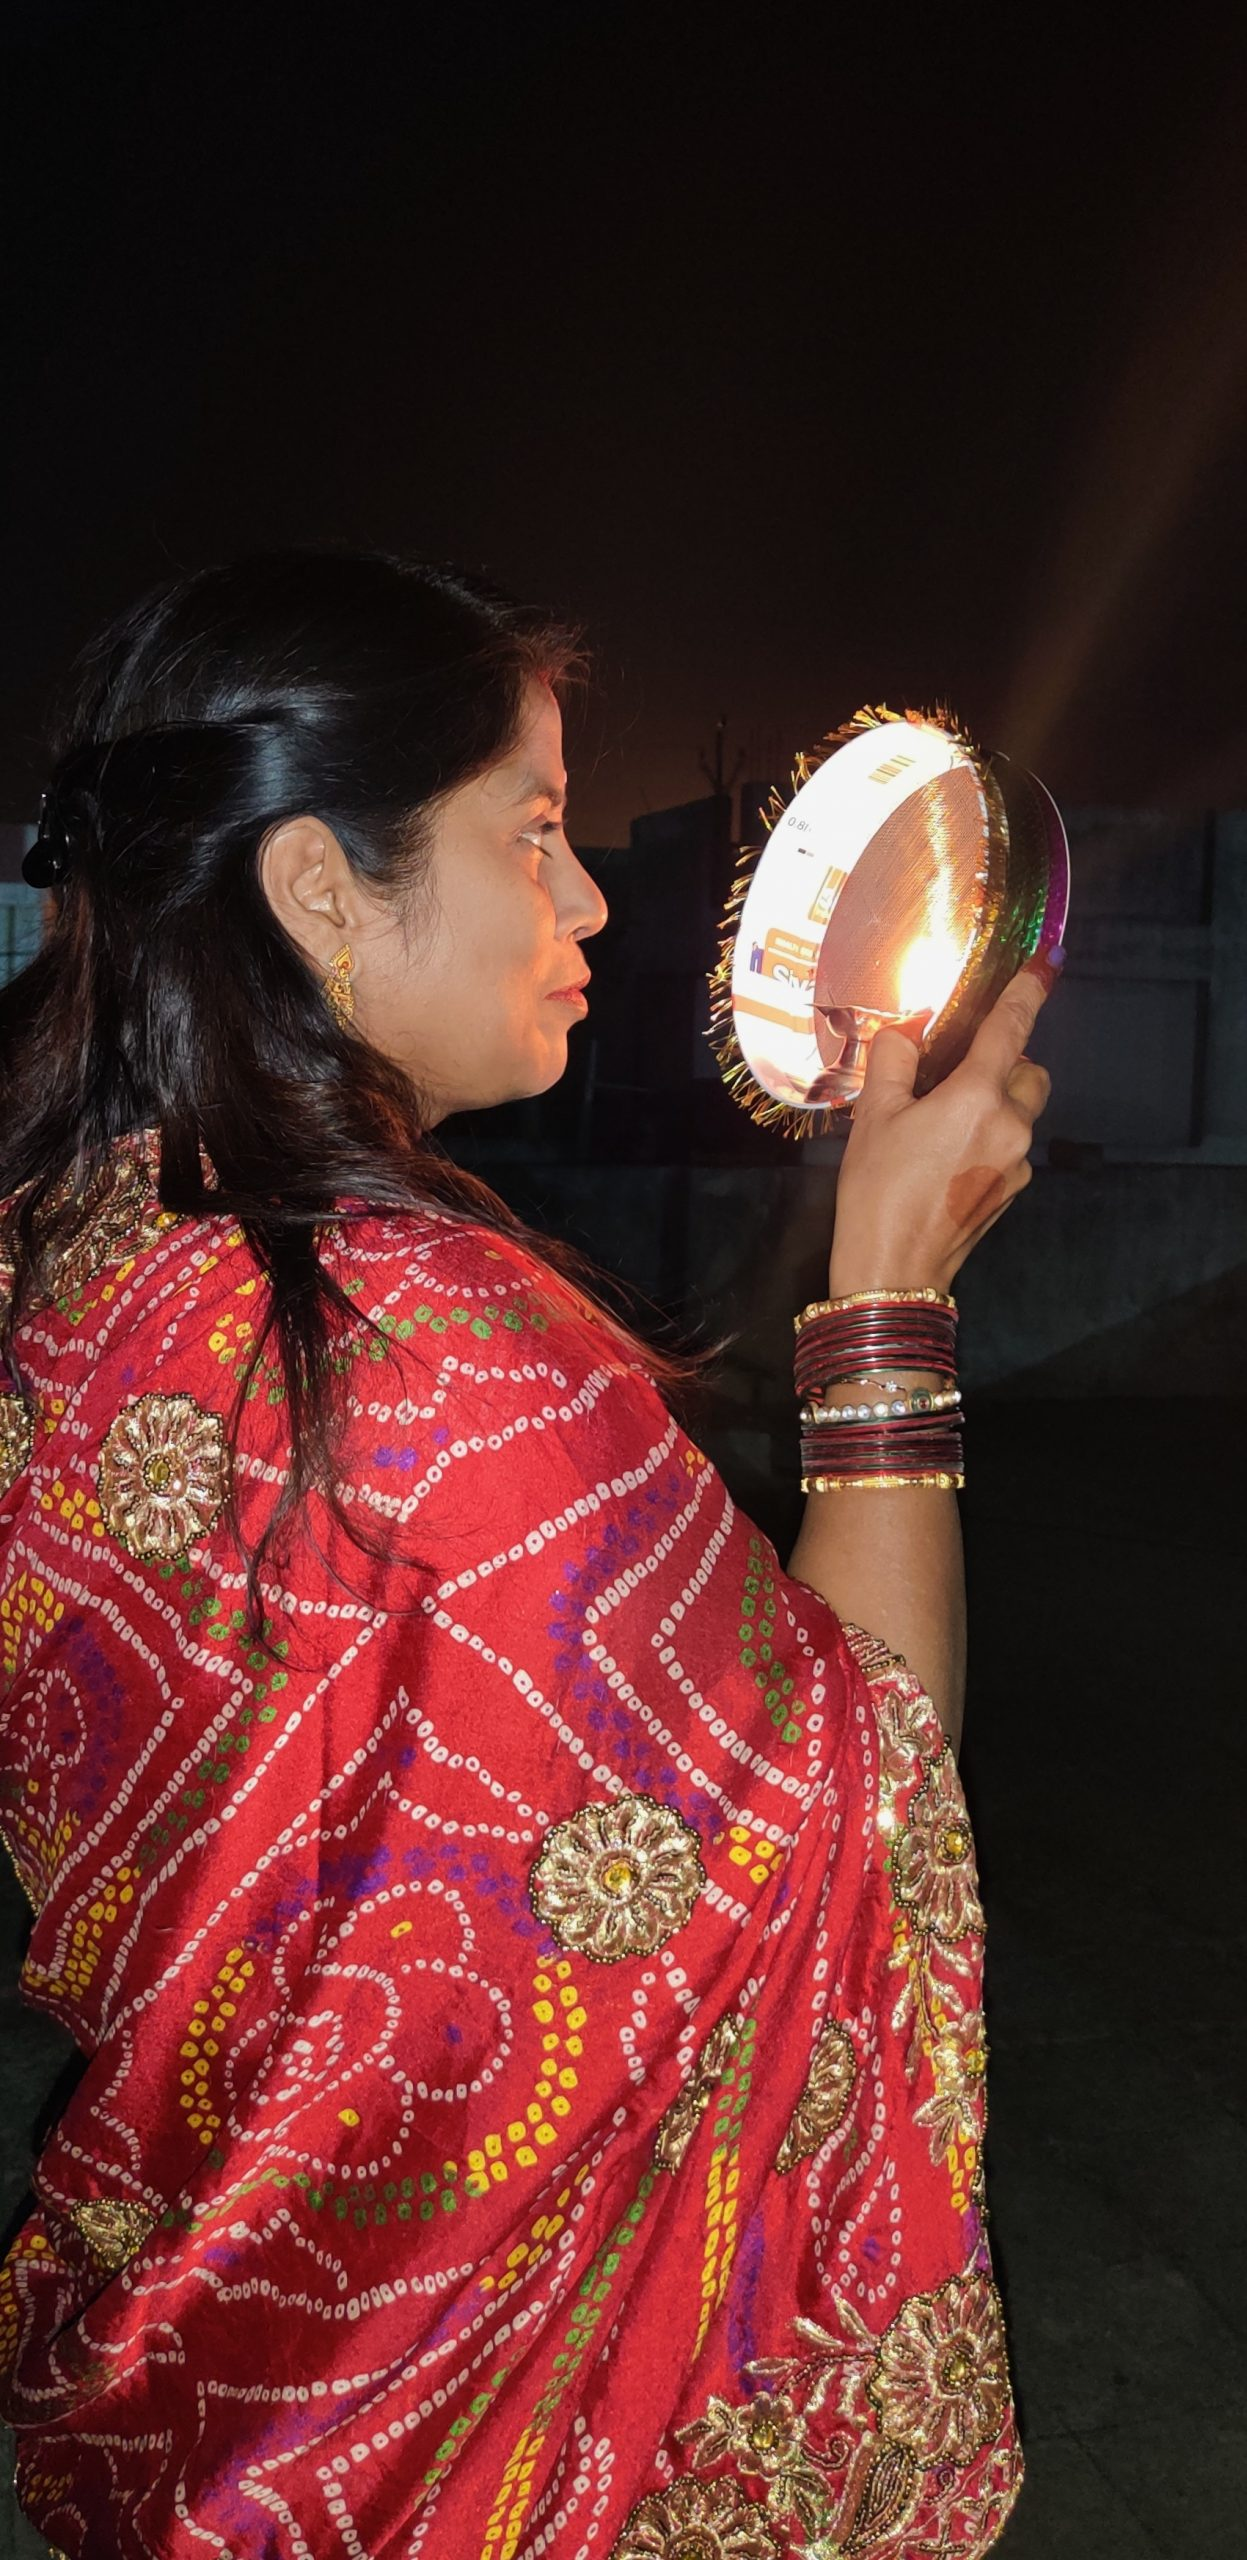 An Indian woman celebrating Karva Chauth